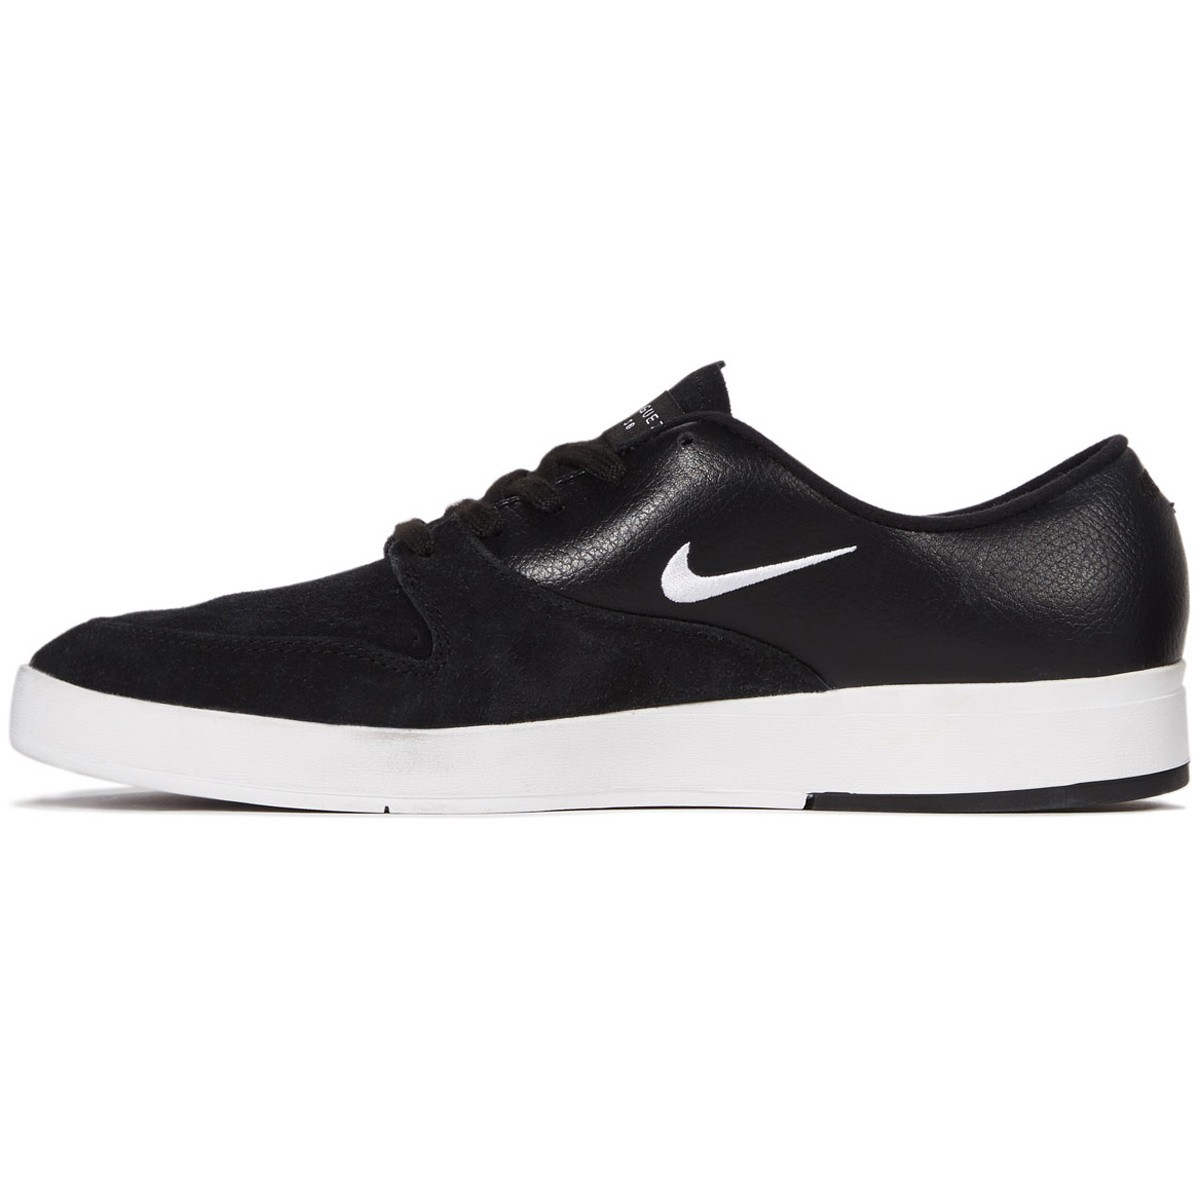 sports shoes buy best the cheapest Nike SB Zoom Paul Rodriguez X Shoes